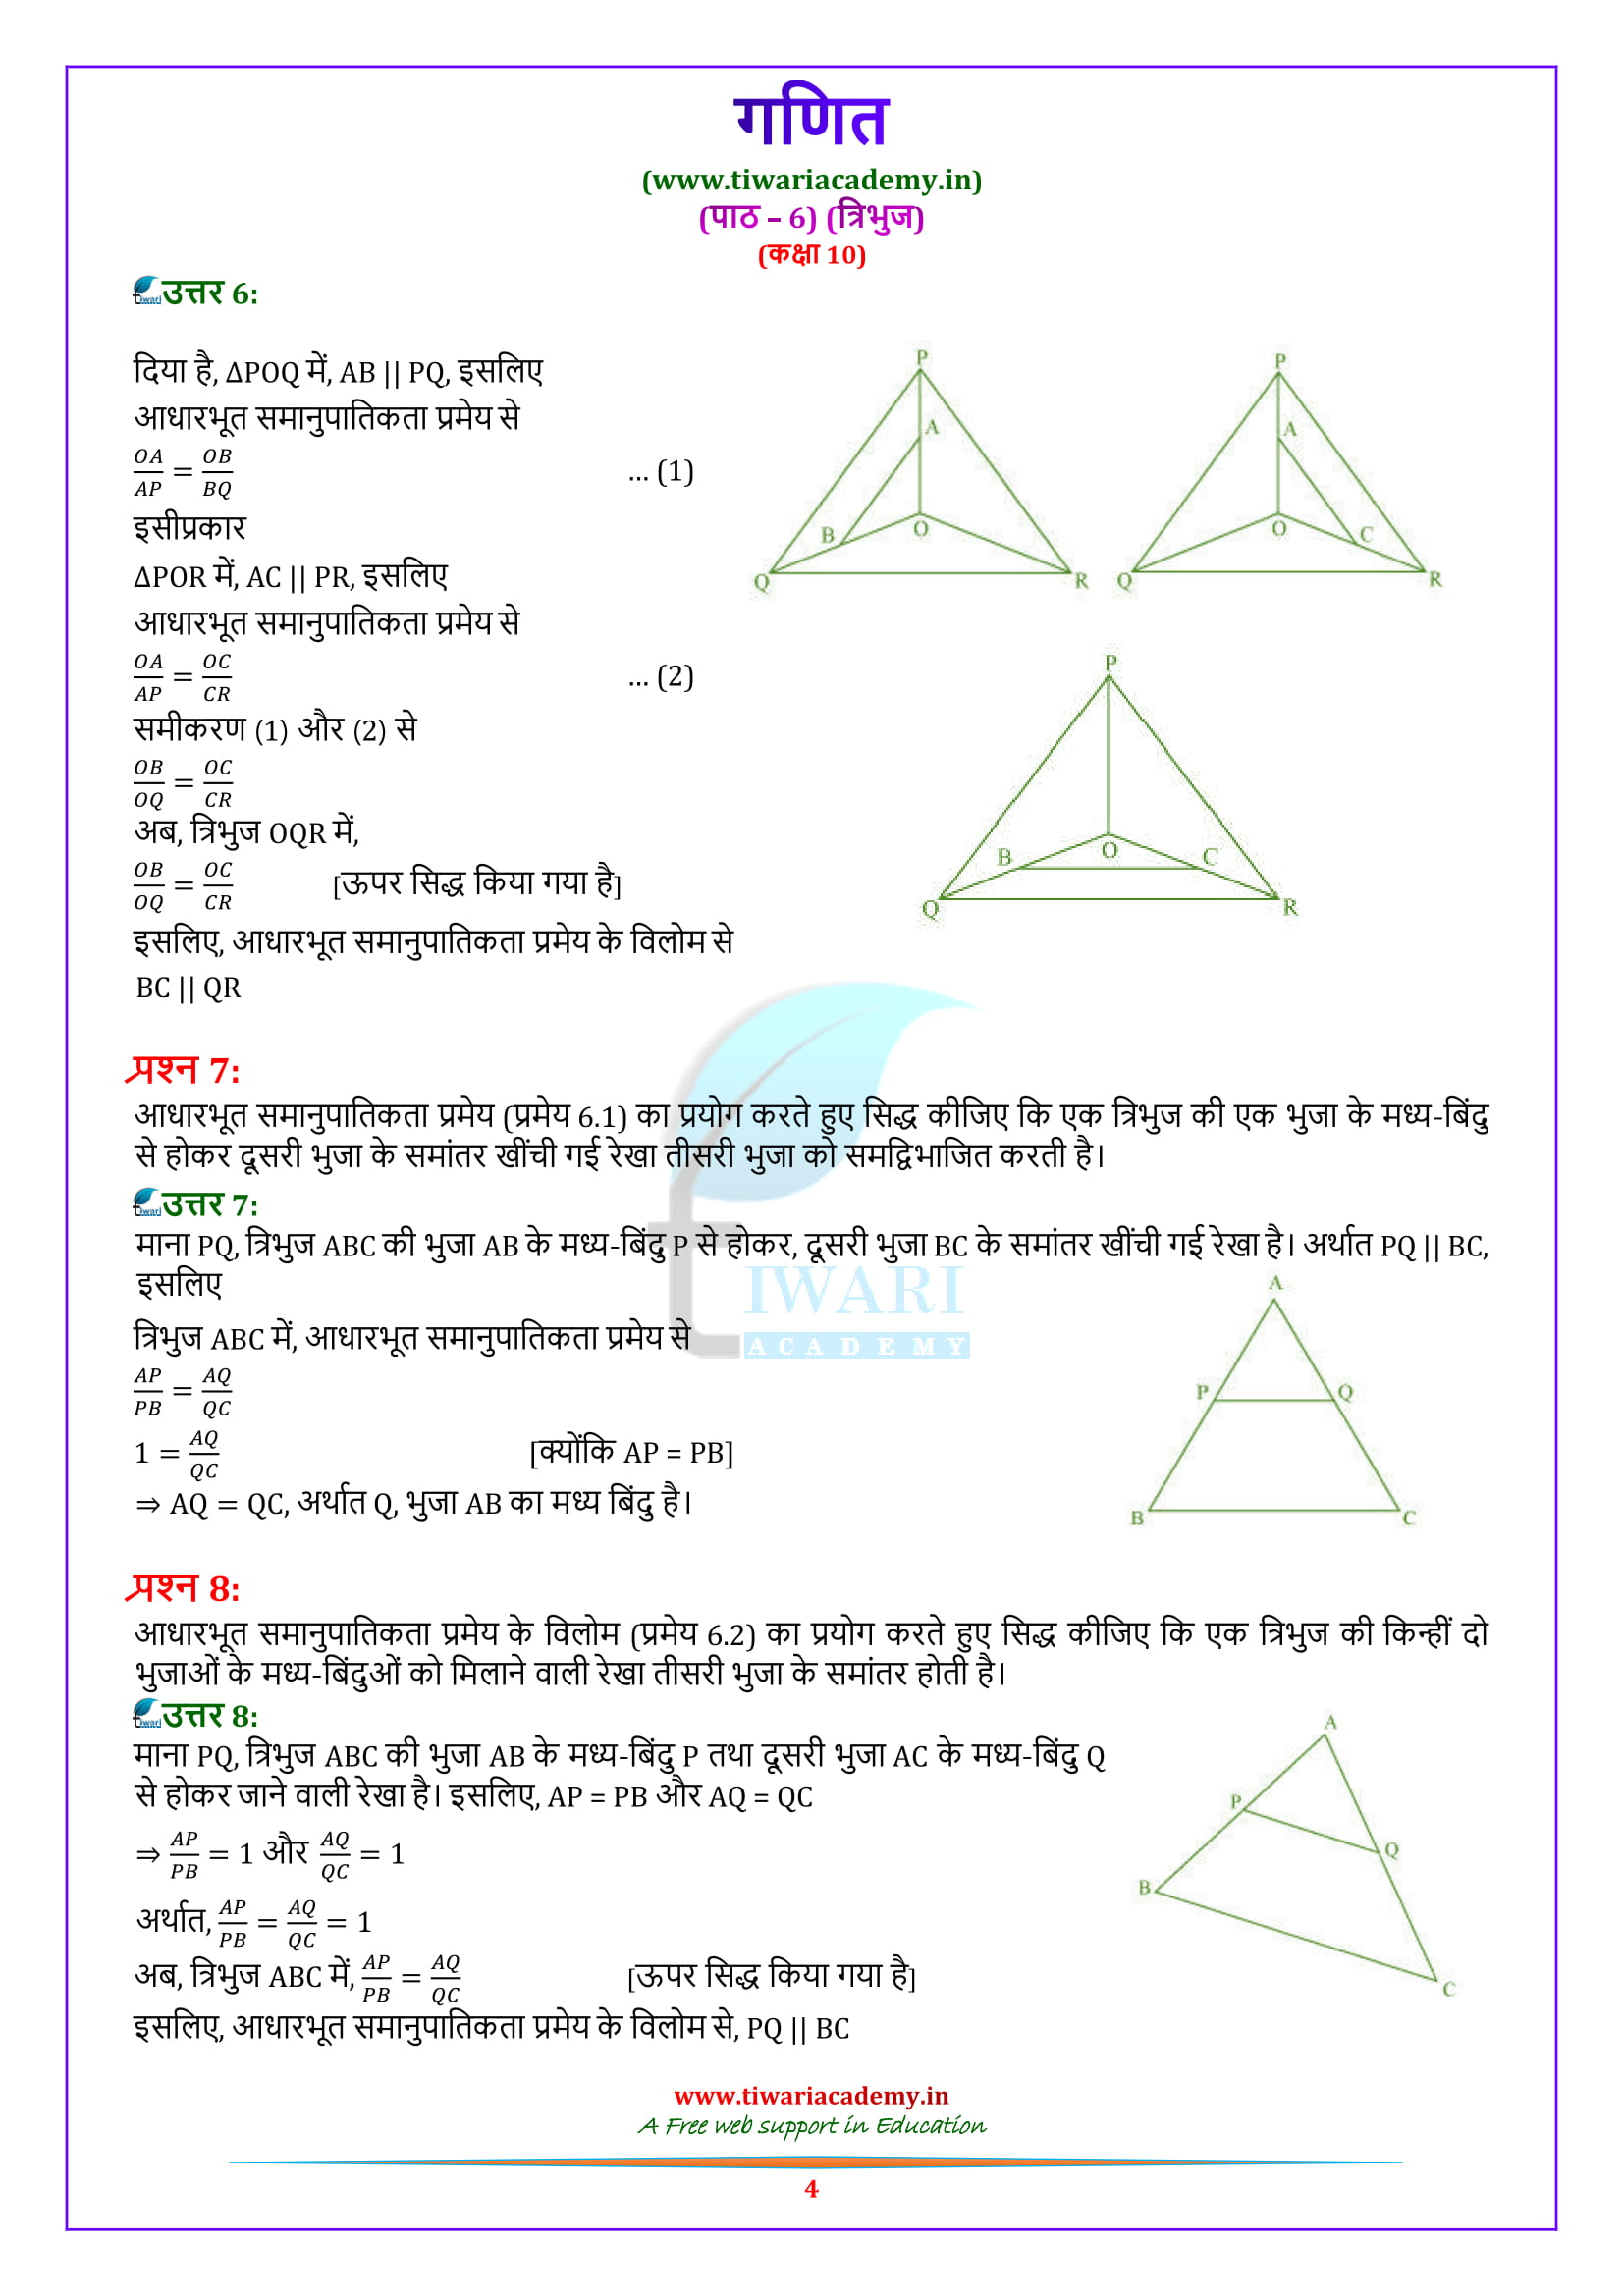 NCERT Solutions for Class 10 Maths Exercise 6.2 in hindi pdf